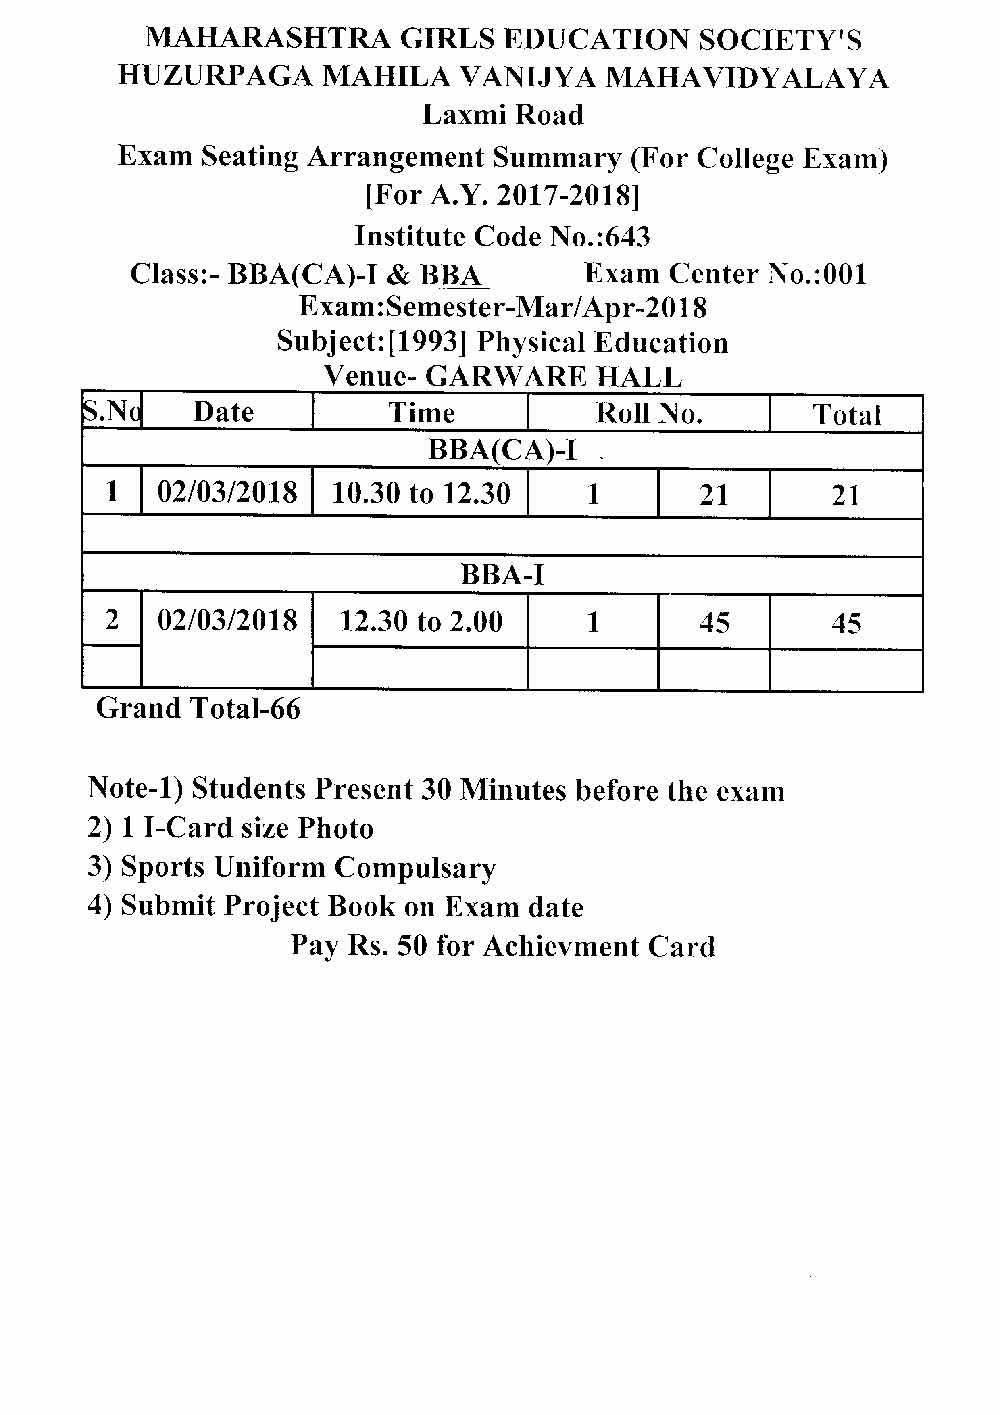 Physical Education Exam Schedule for BBA(CA)-1 & BBA